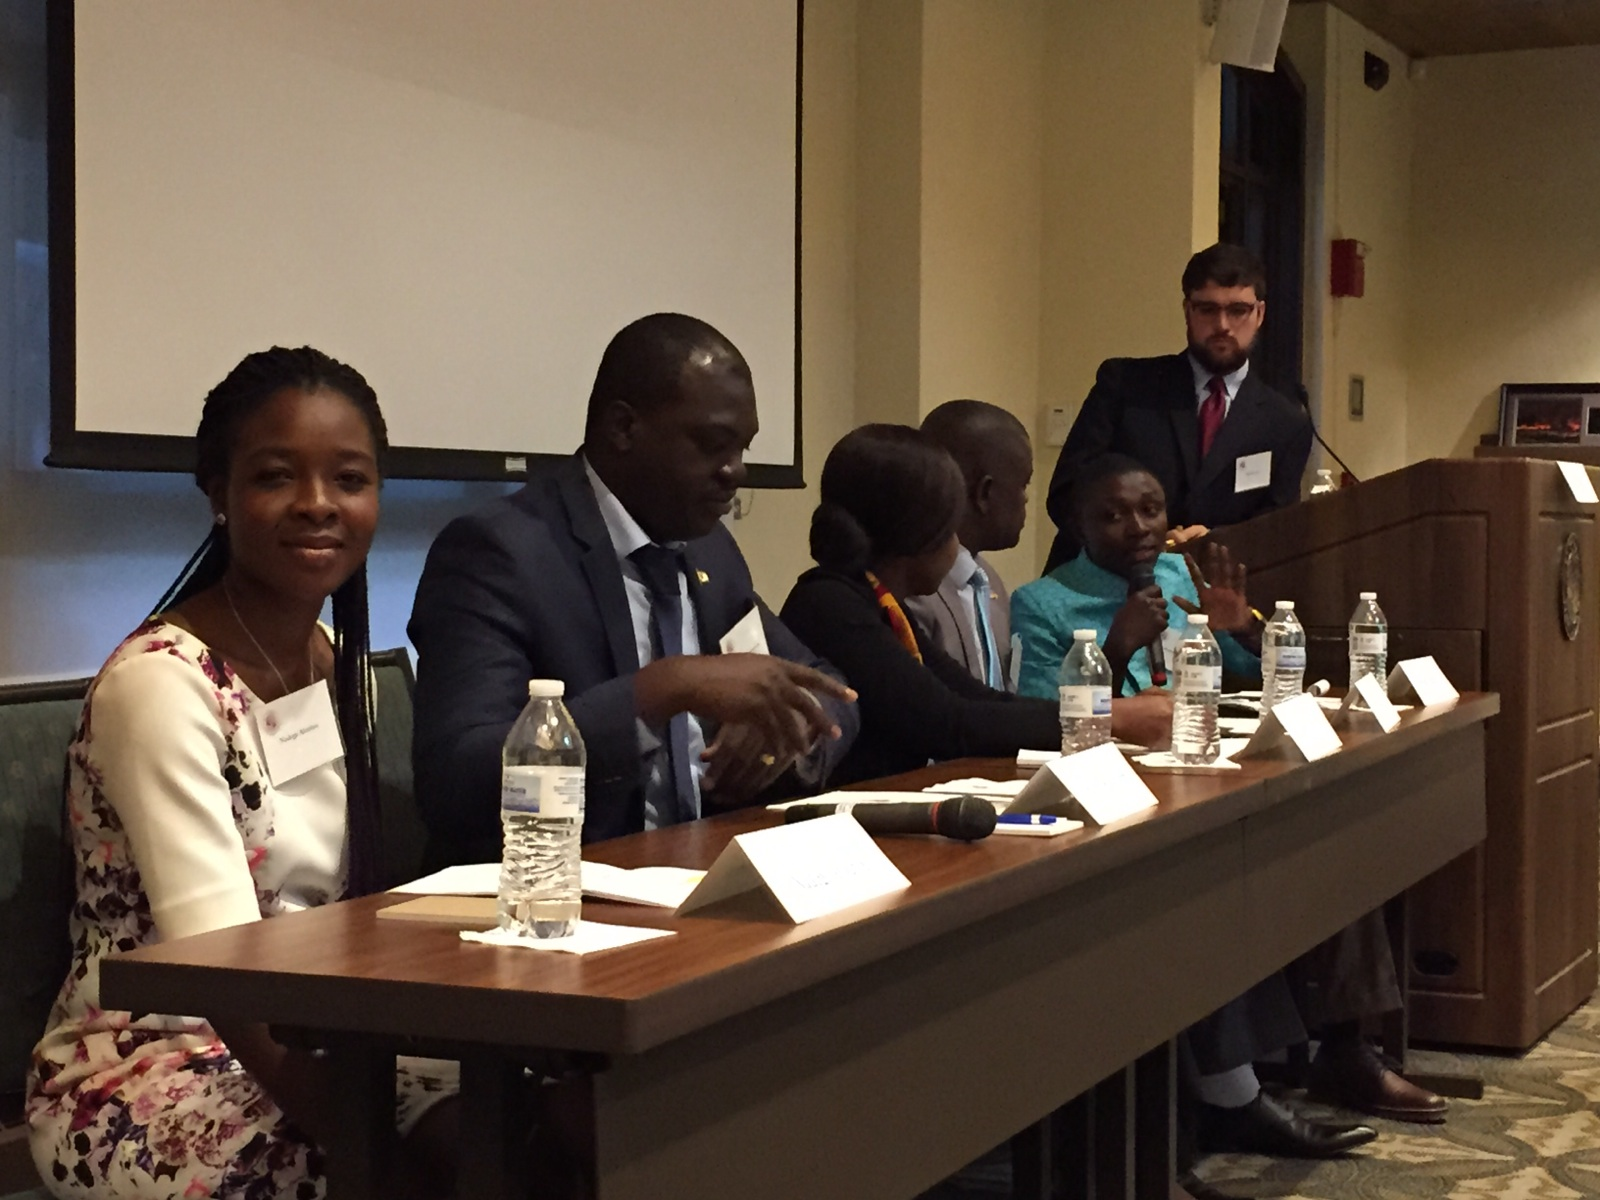 Pannel on civic engagement in Africa at El Pomar Foundation